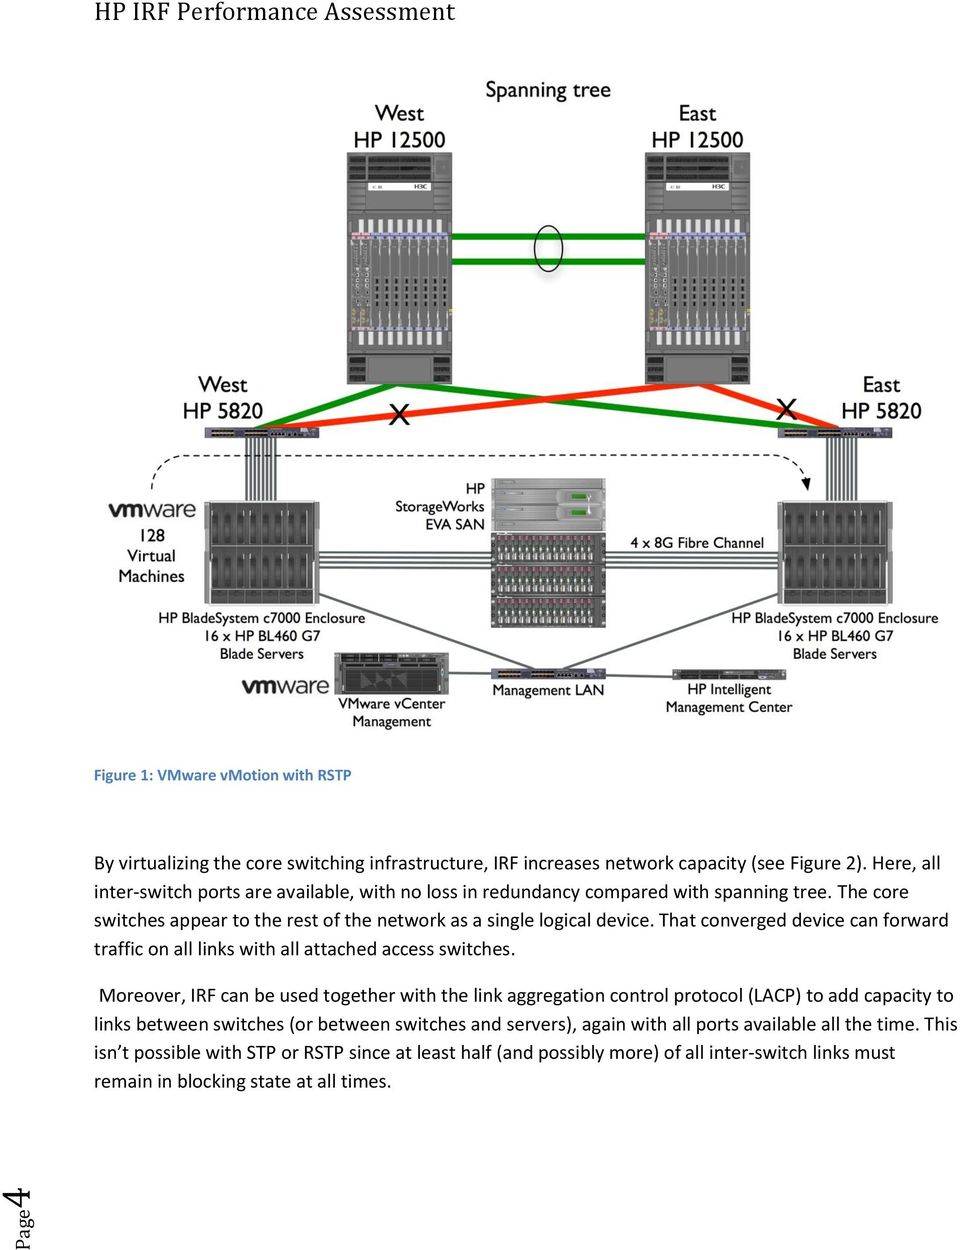 That converged device can forward traffic on all links with all attached access switches.